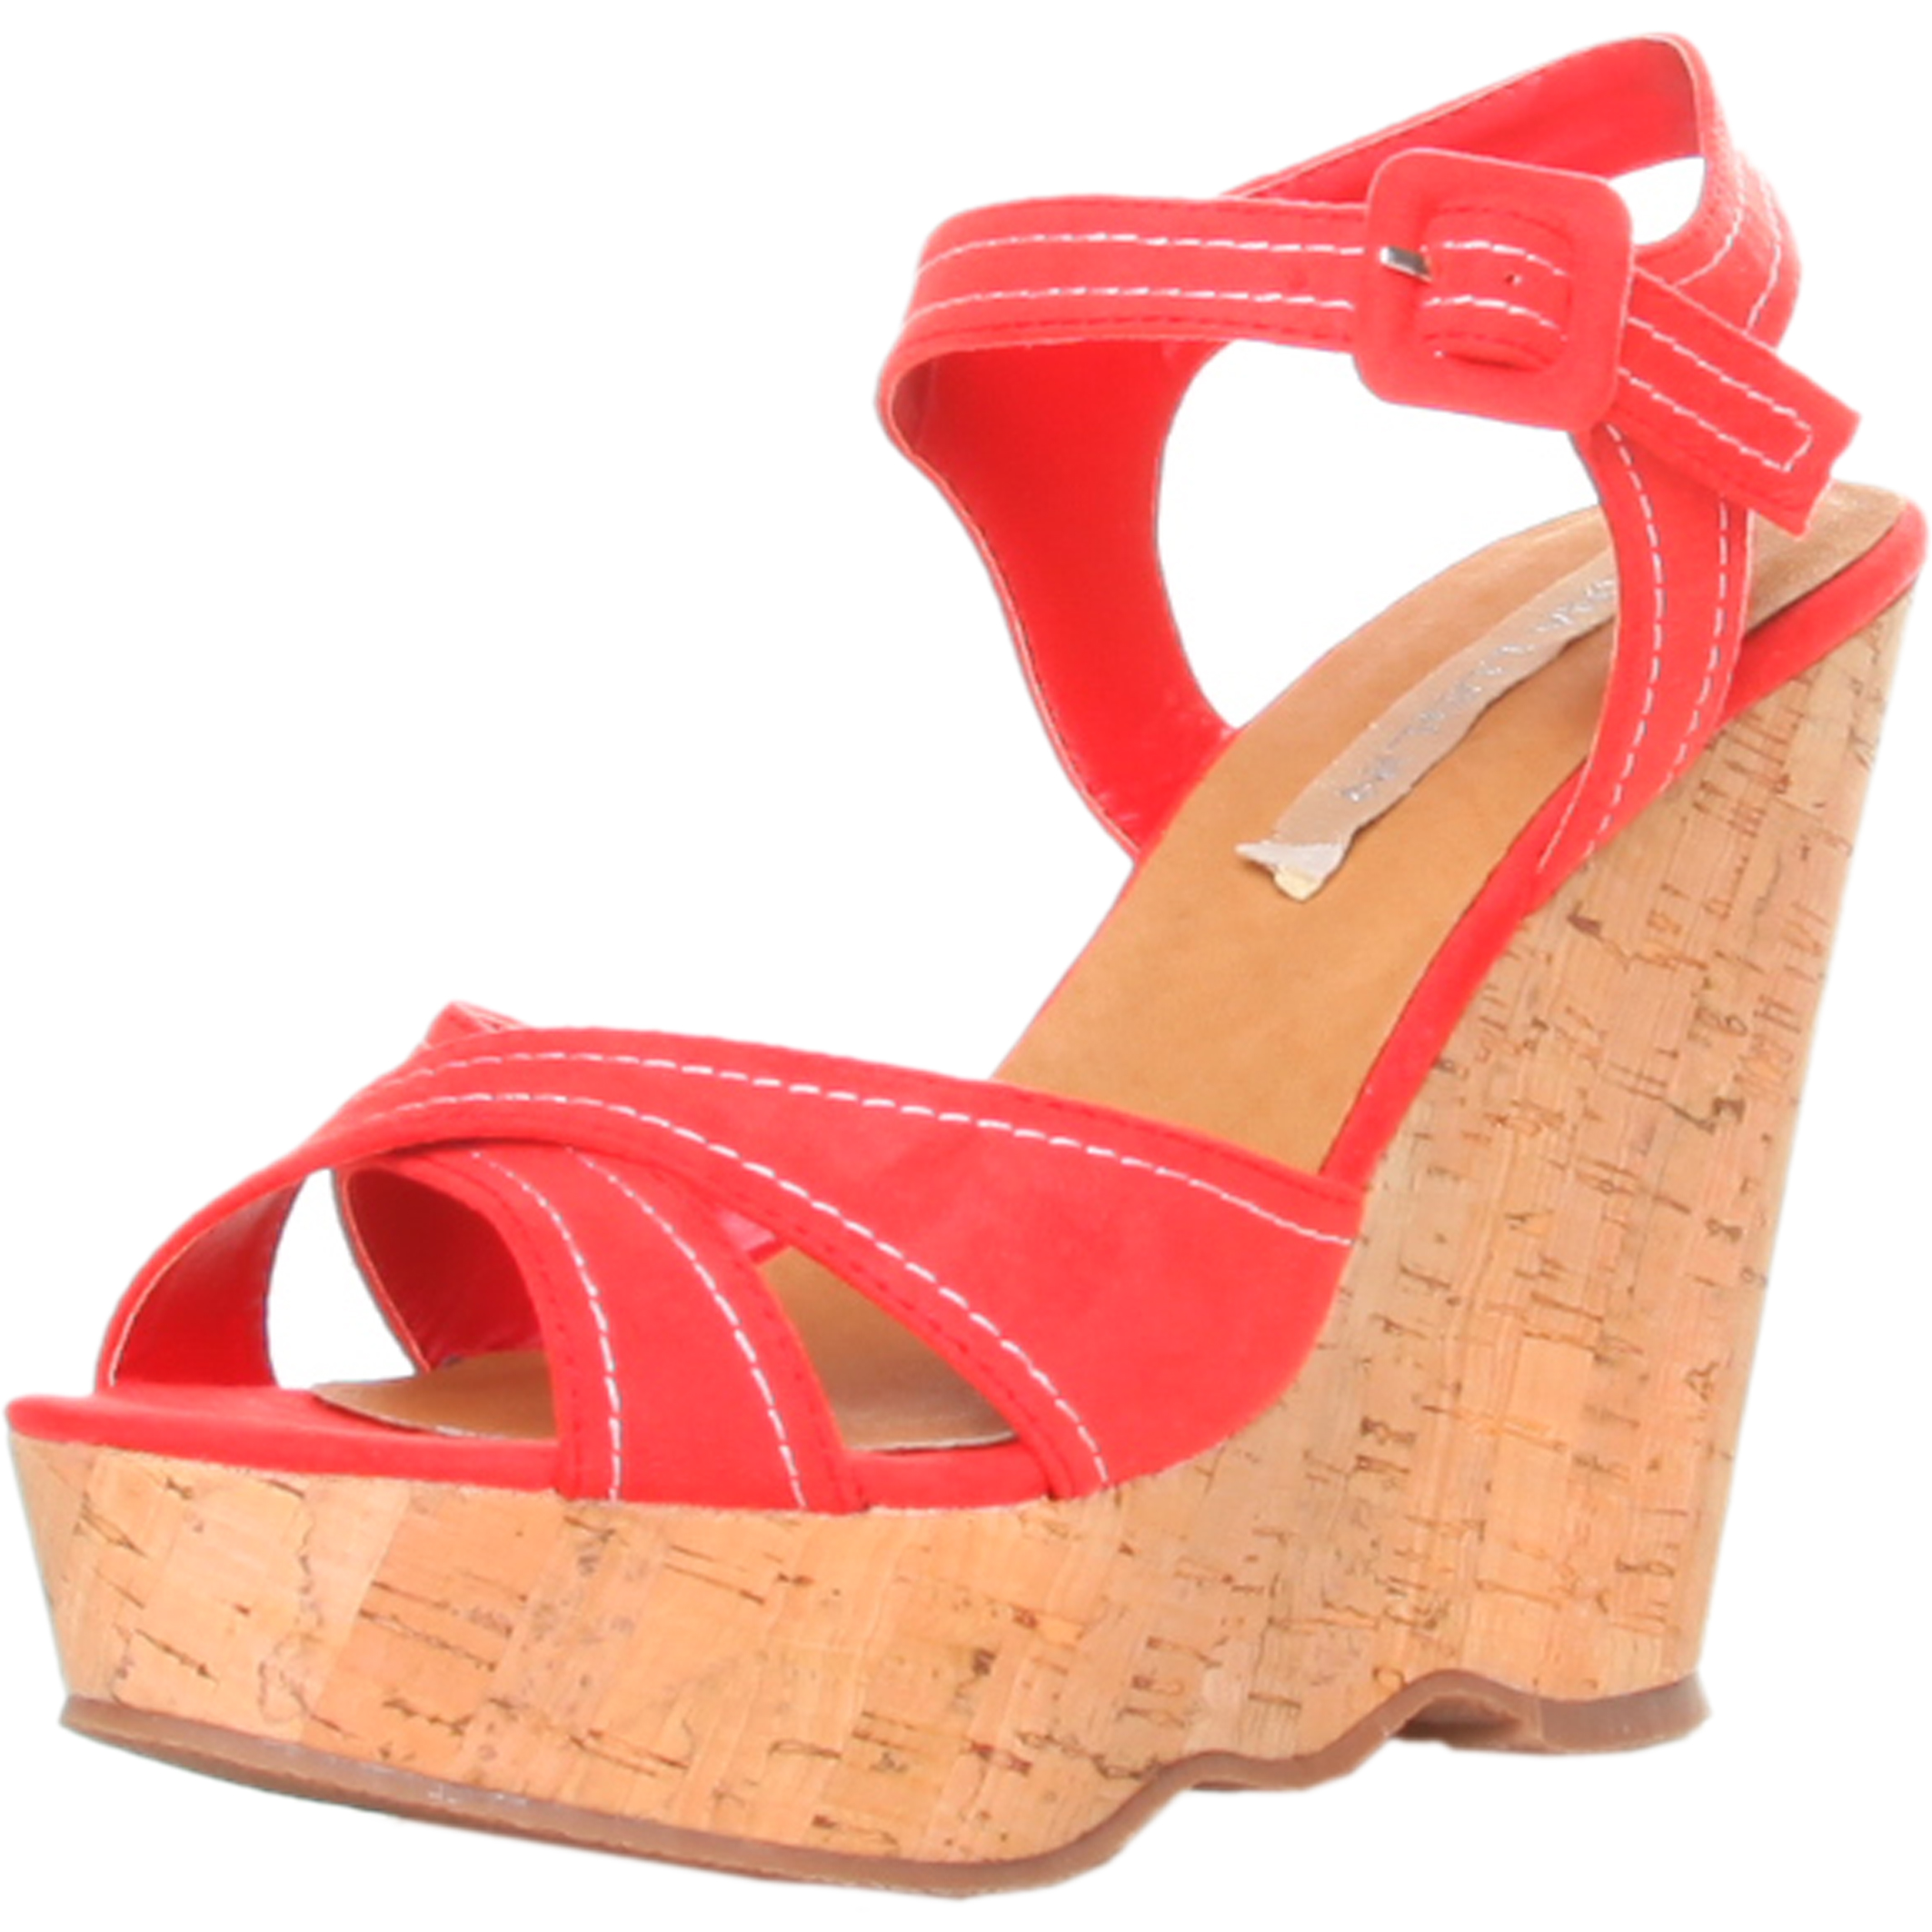 Ana Lublin Sandals Rosso Rf600349